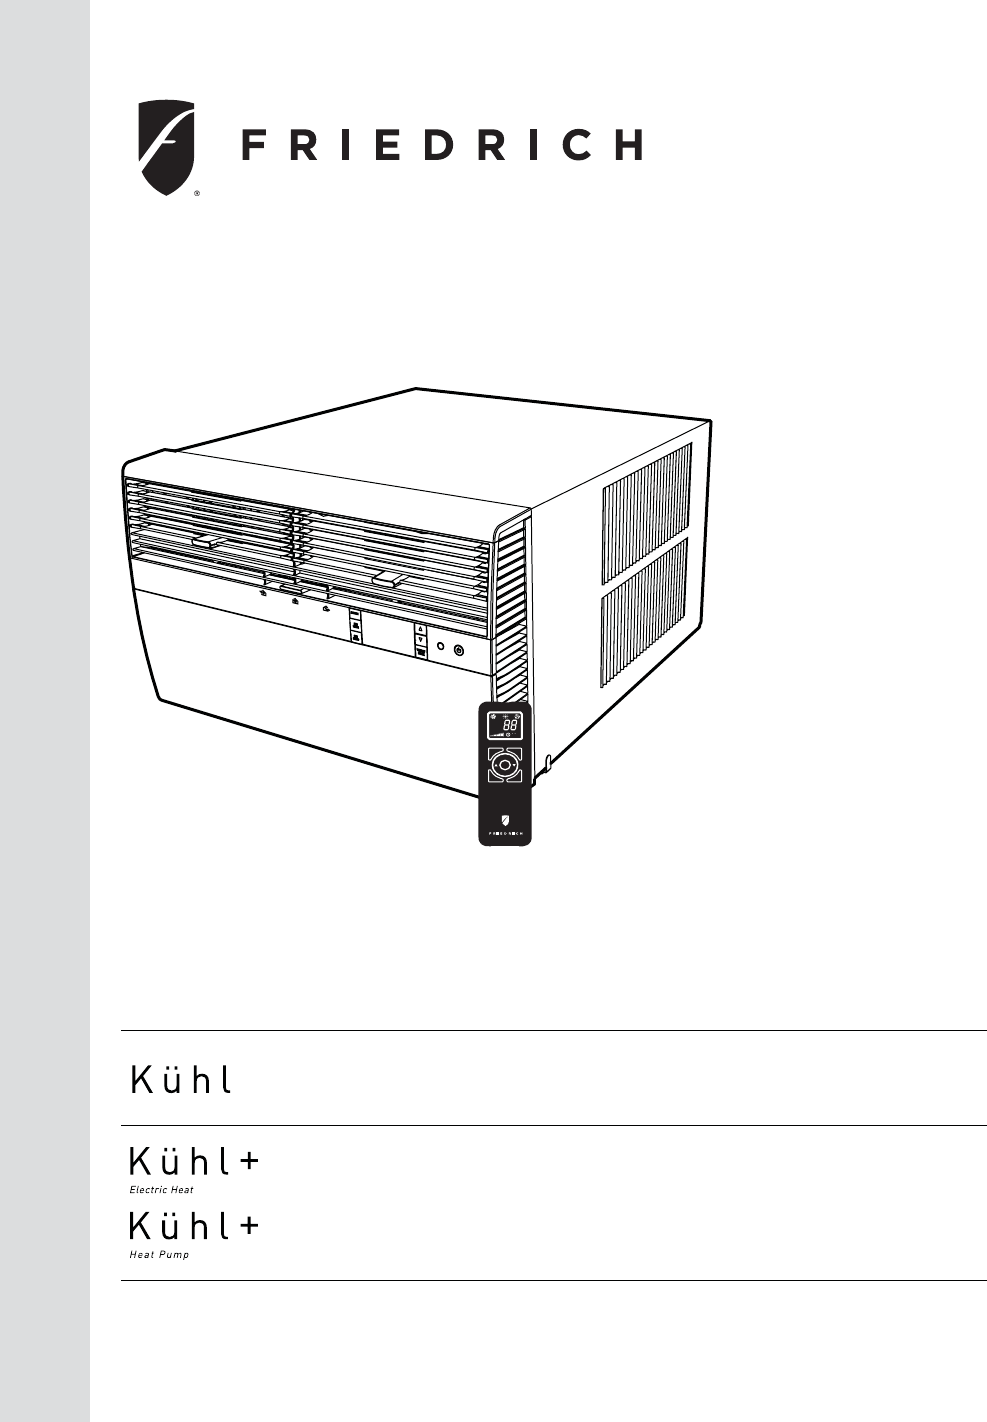 Page 8 of friedrich air conditioner bro412w1a user guide.